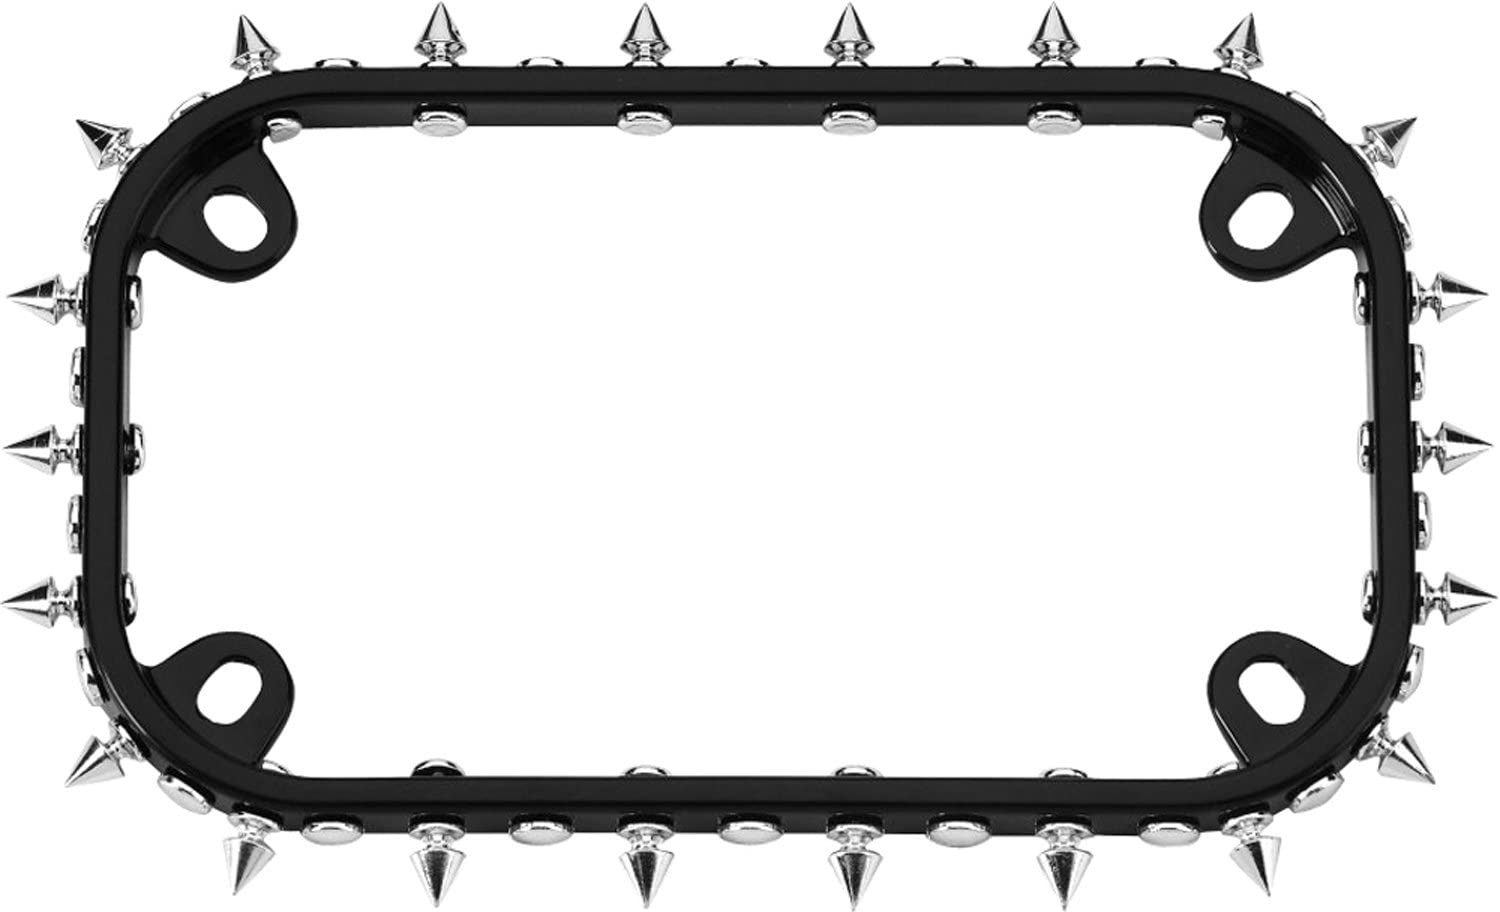 Cruiser Accessories 77015 MC Spikes Motorcycle License Plate Frame, Black/Chrome